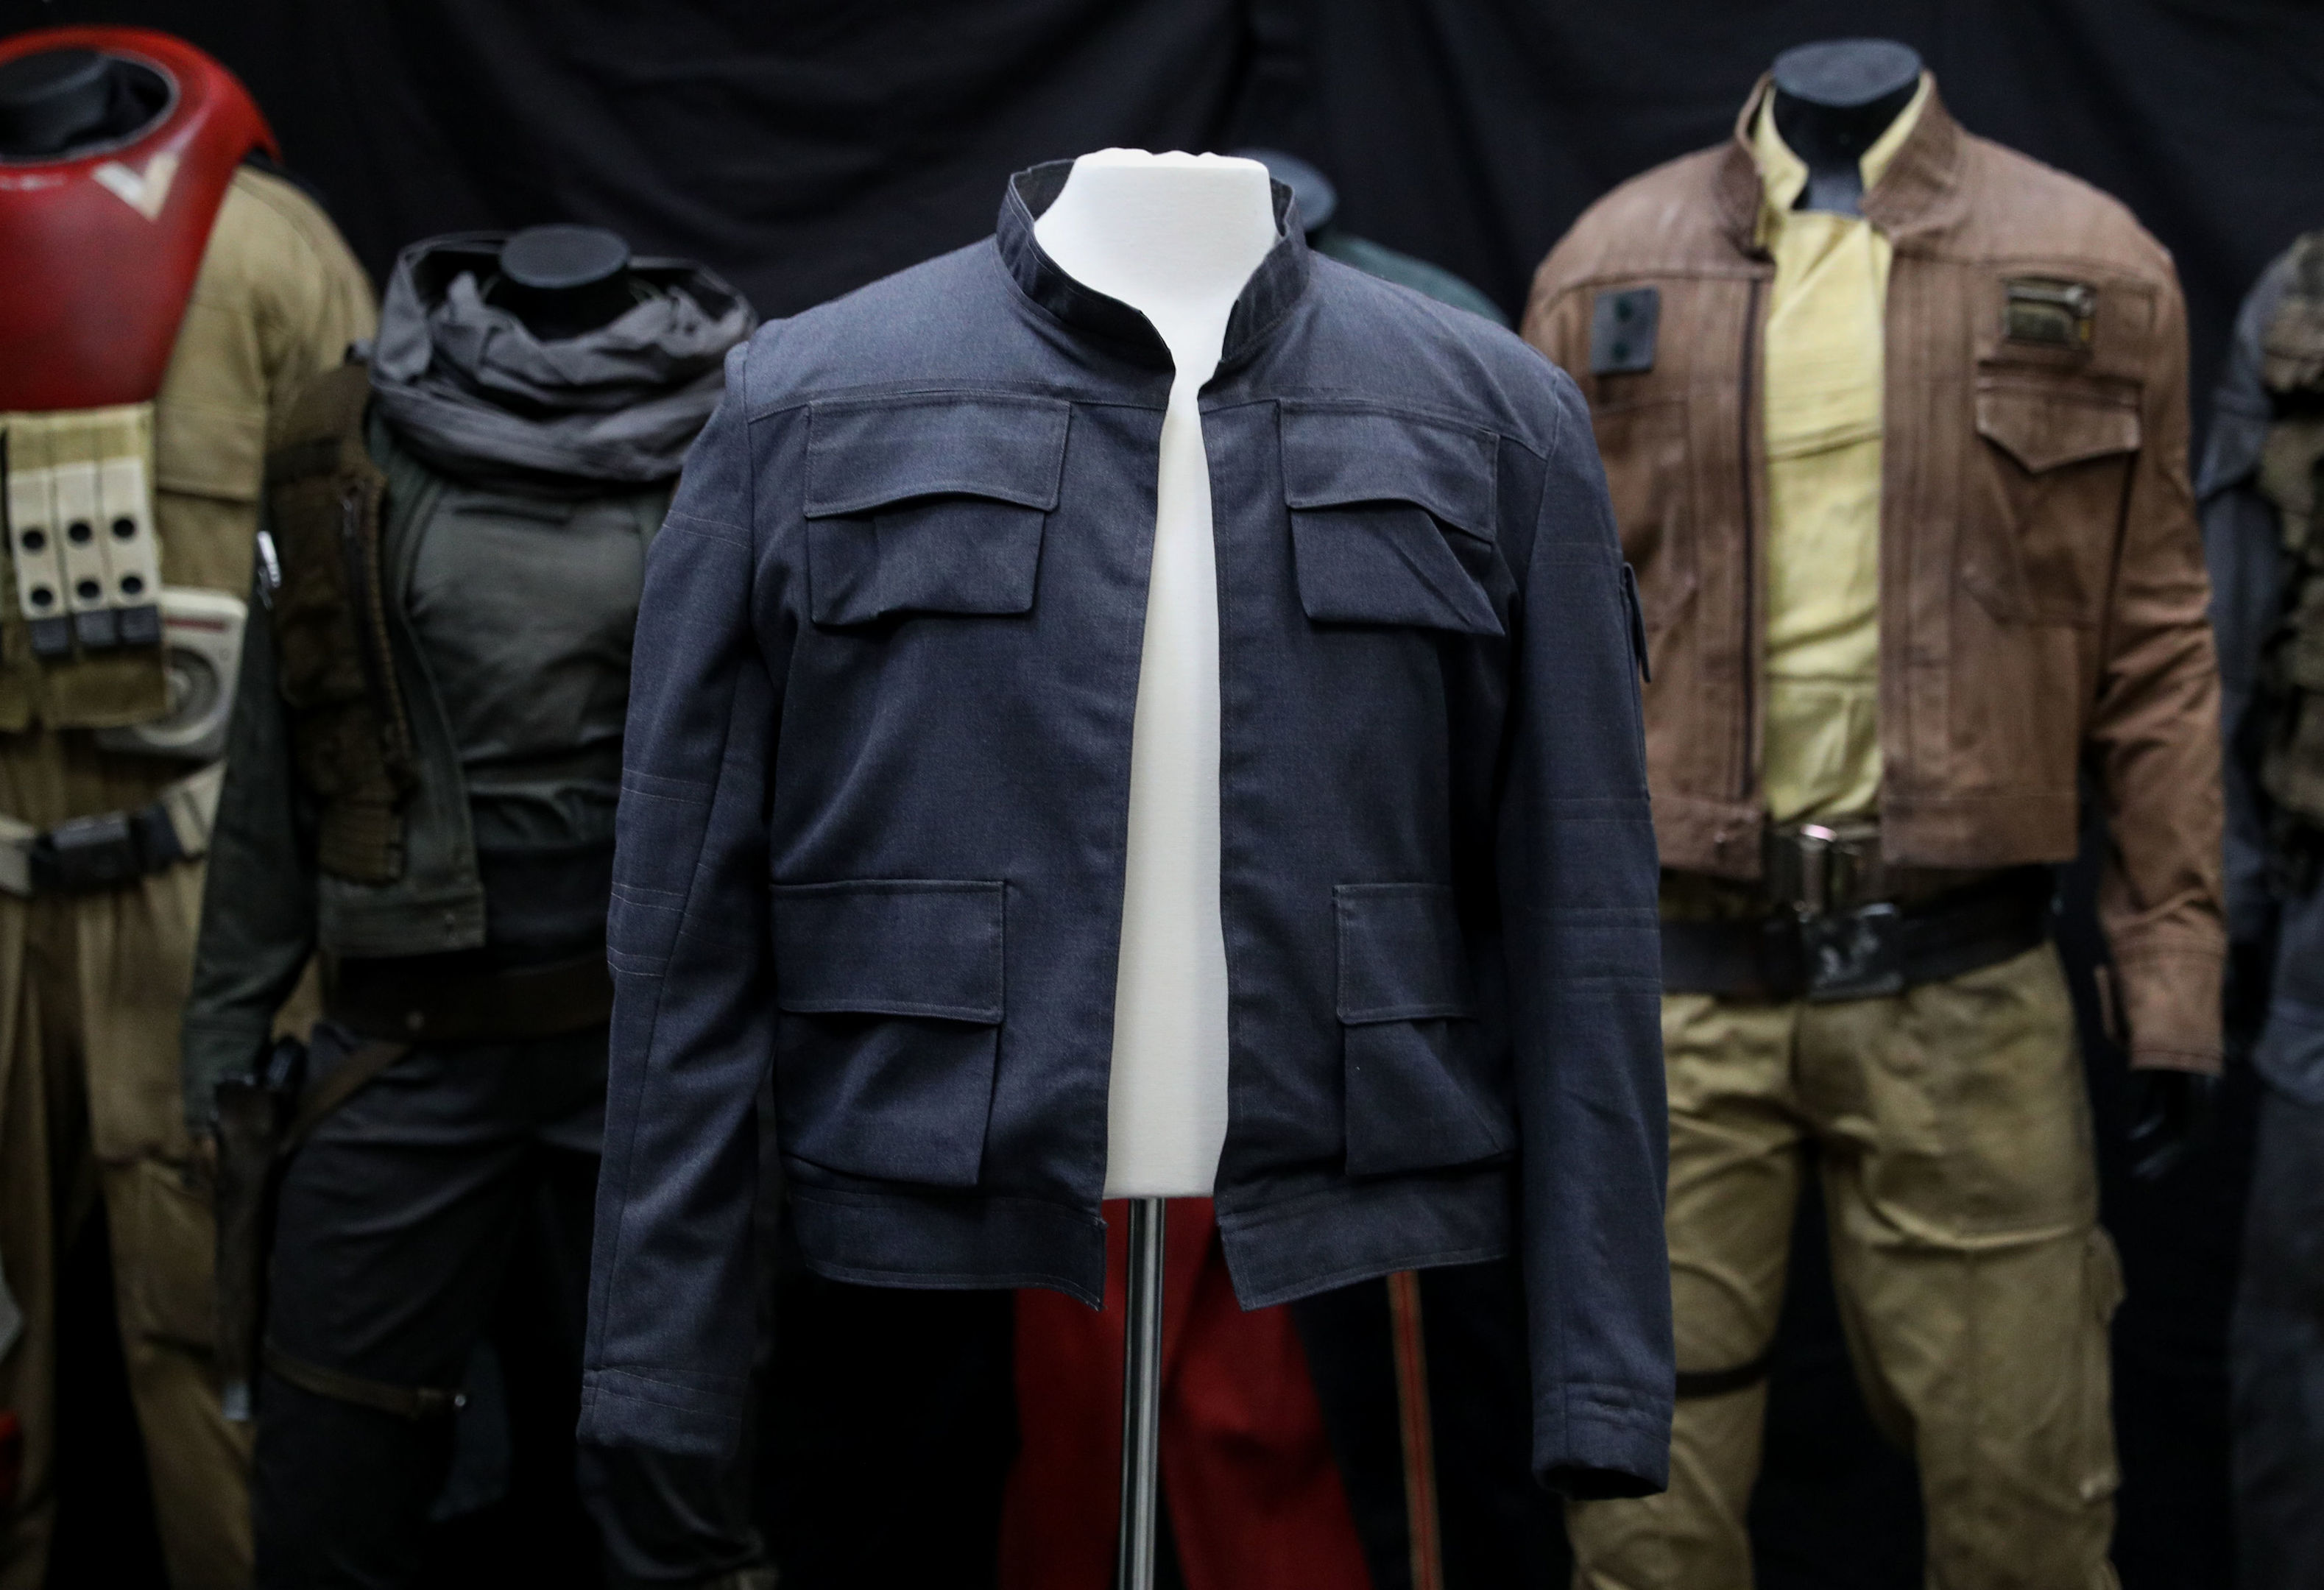 Han Solo's jacket, as worn by Harrison Ford in Star Wars: The Empire Strikes Back on display in front of costumes from Rogue One: A Star Wars Story (Andrew Matthews/PA Wire)